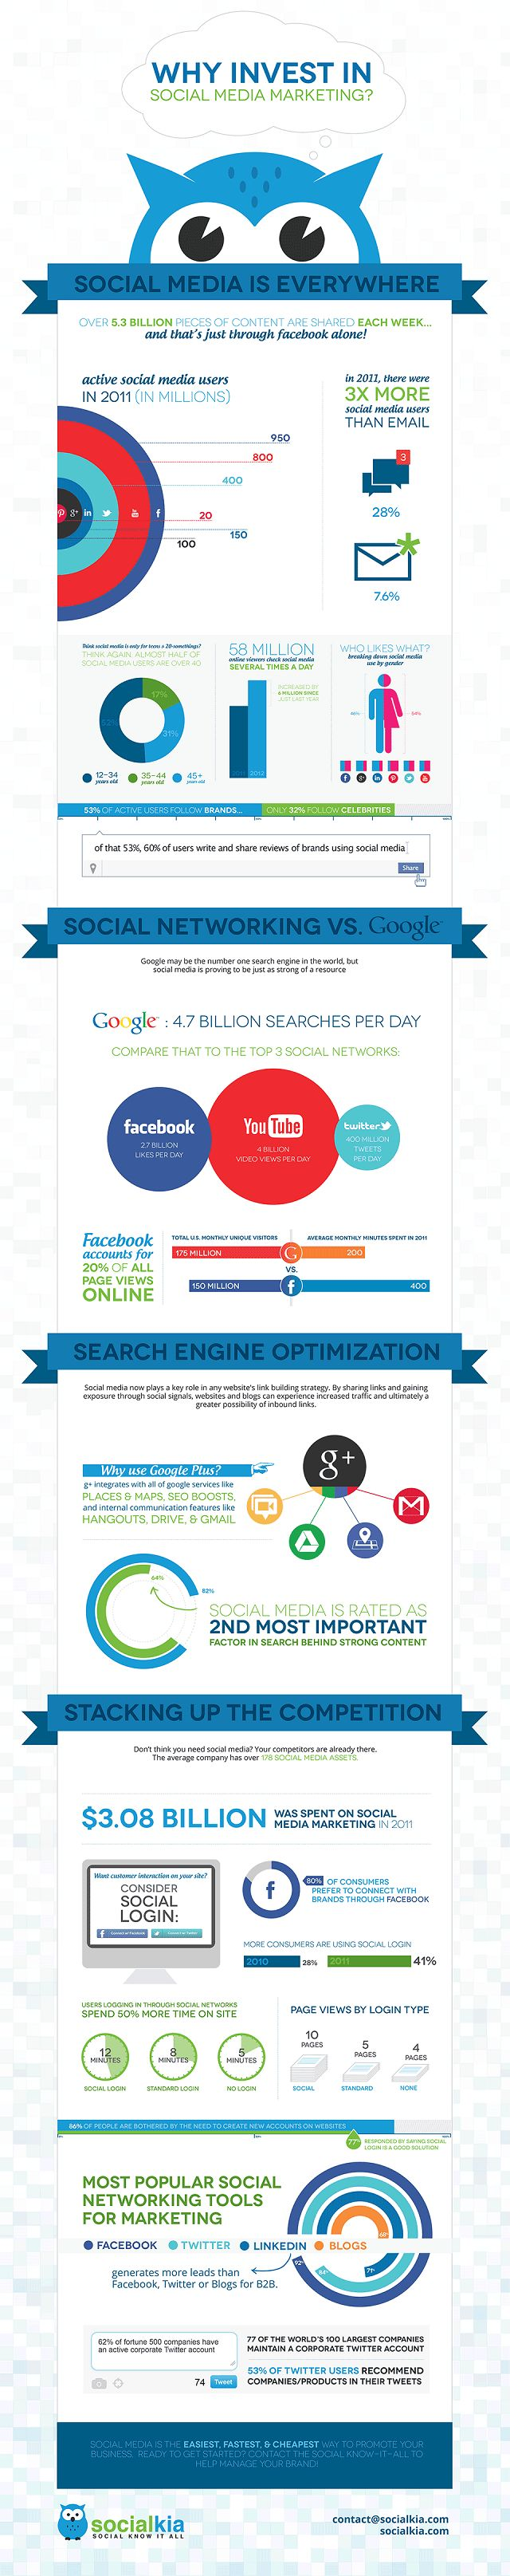 Why Invest in SOcial Media Marketing?